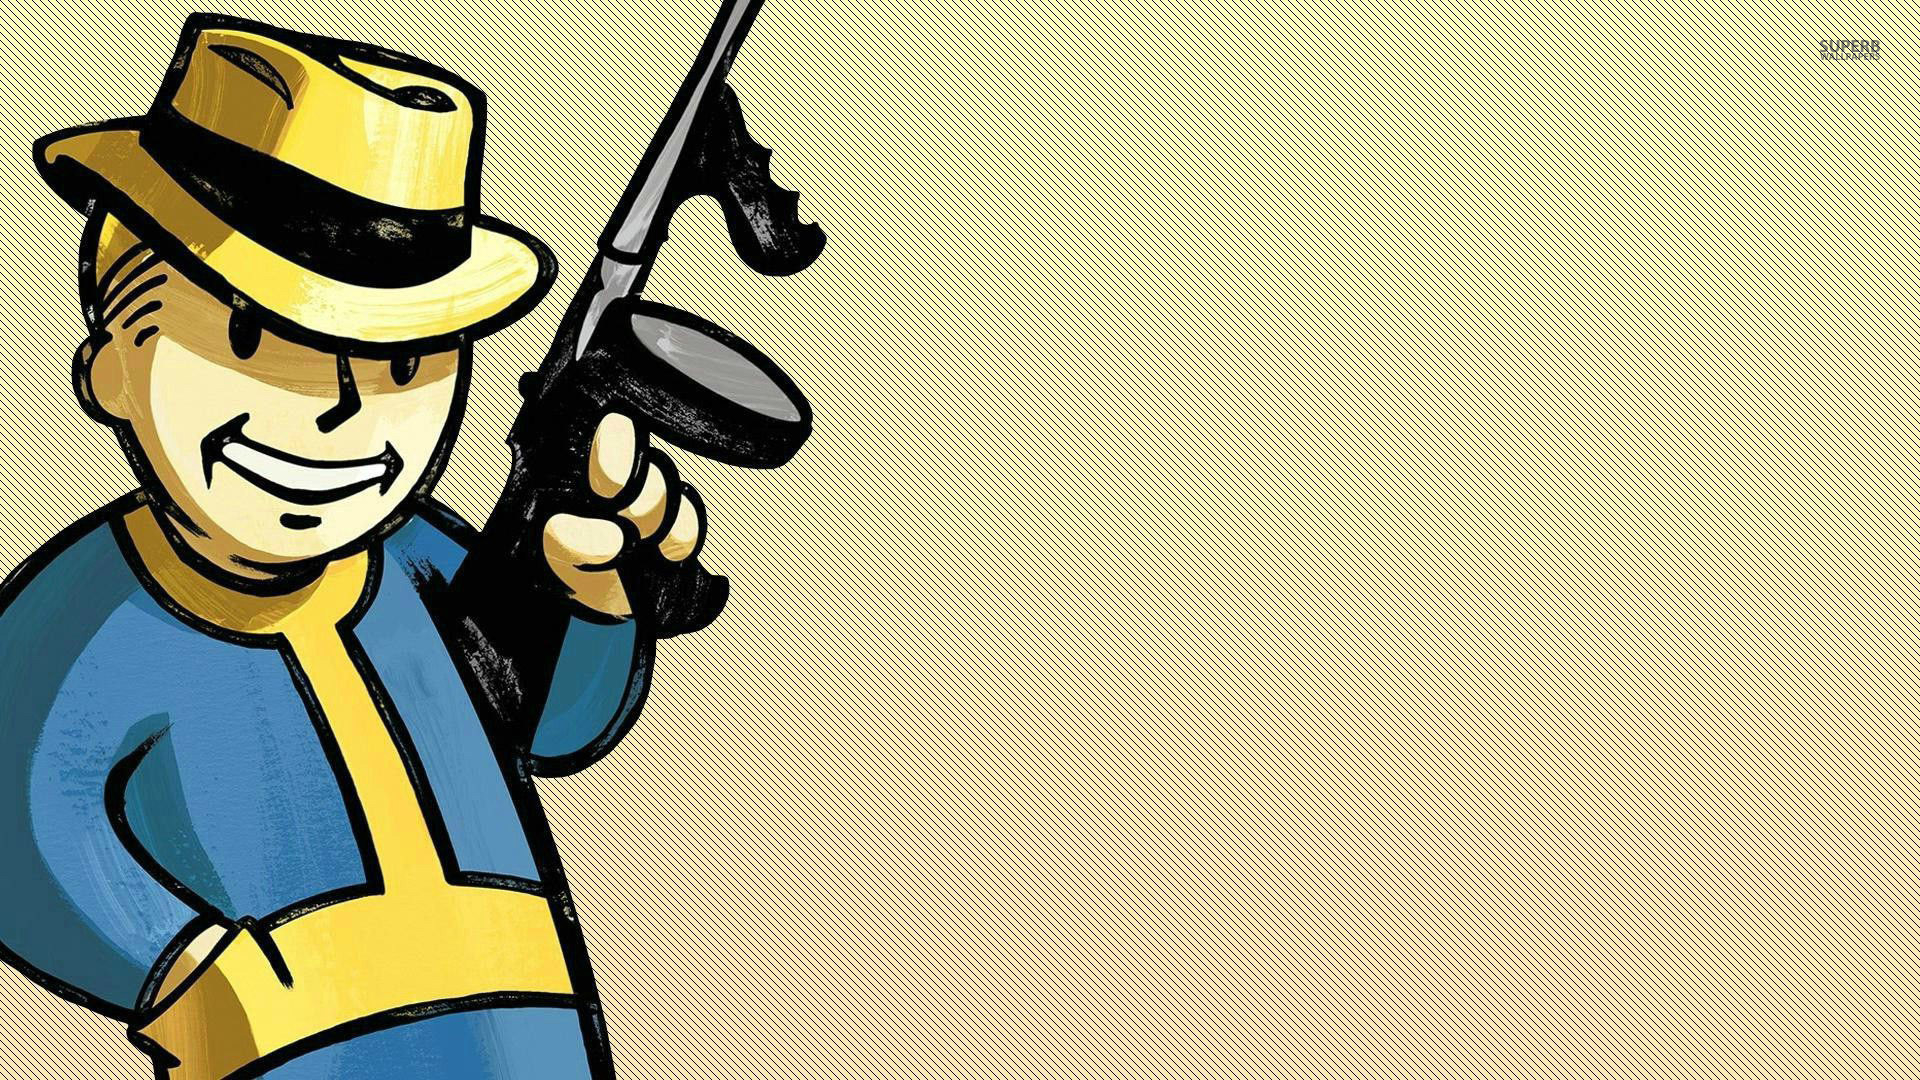 Wallpaper Iphone 5 Cartoon Vault Boy Wallpaper 73 Images